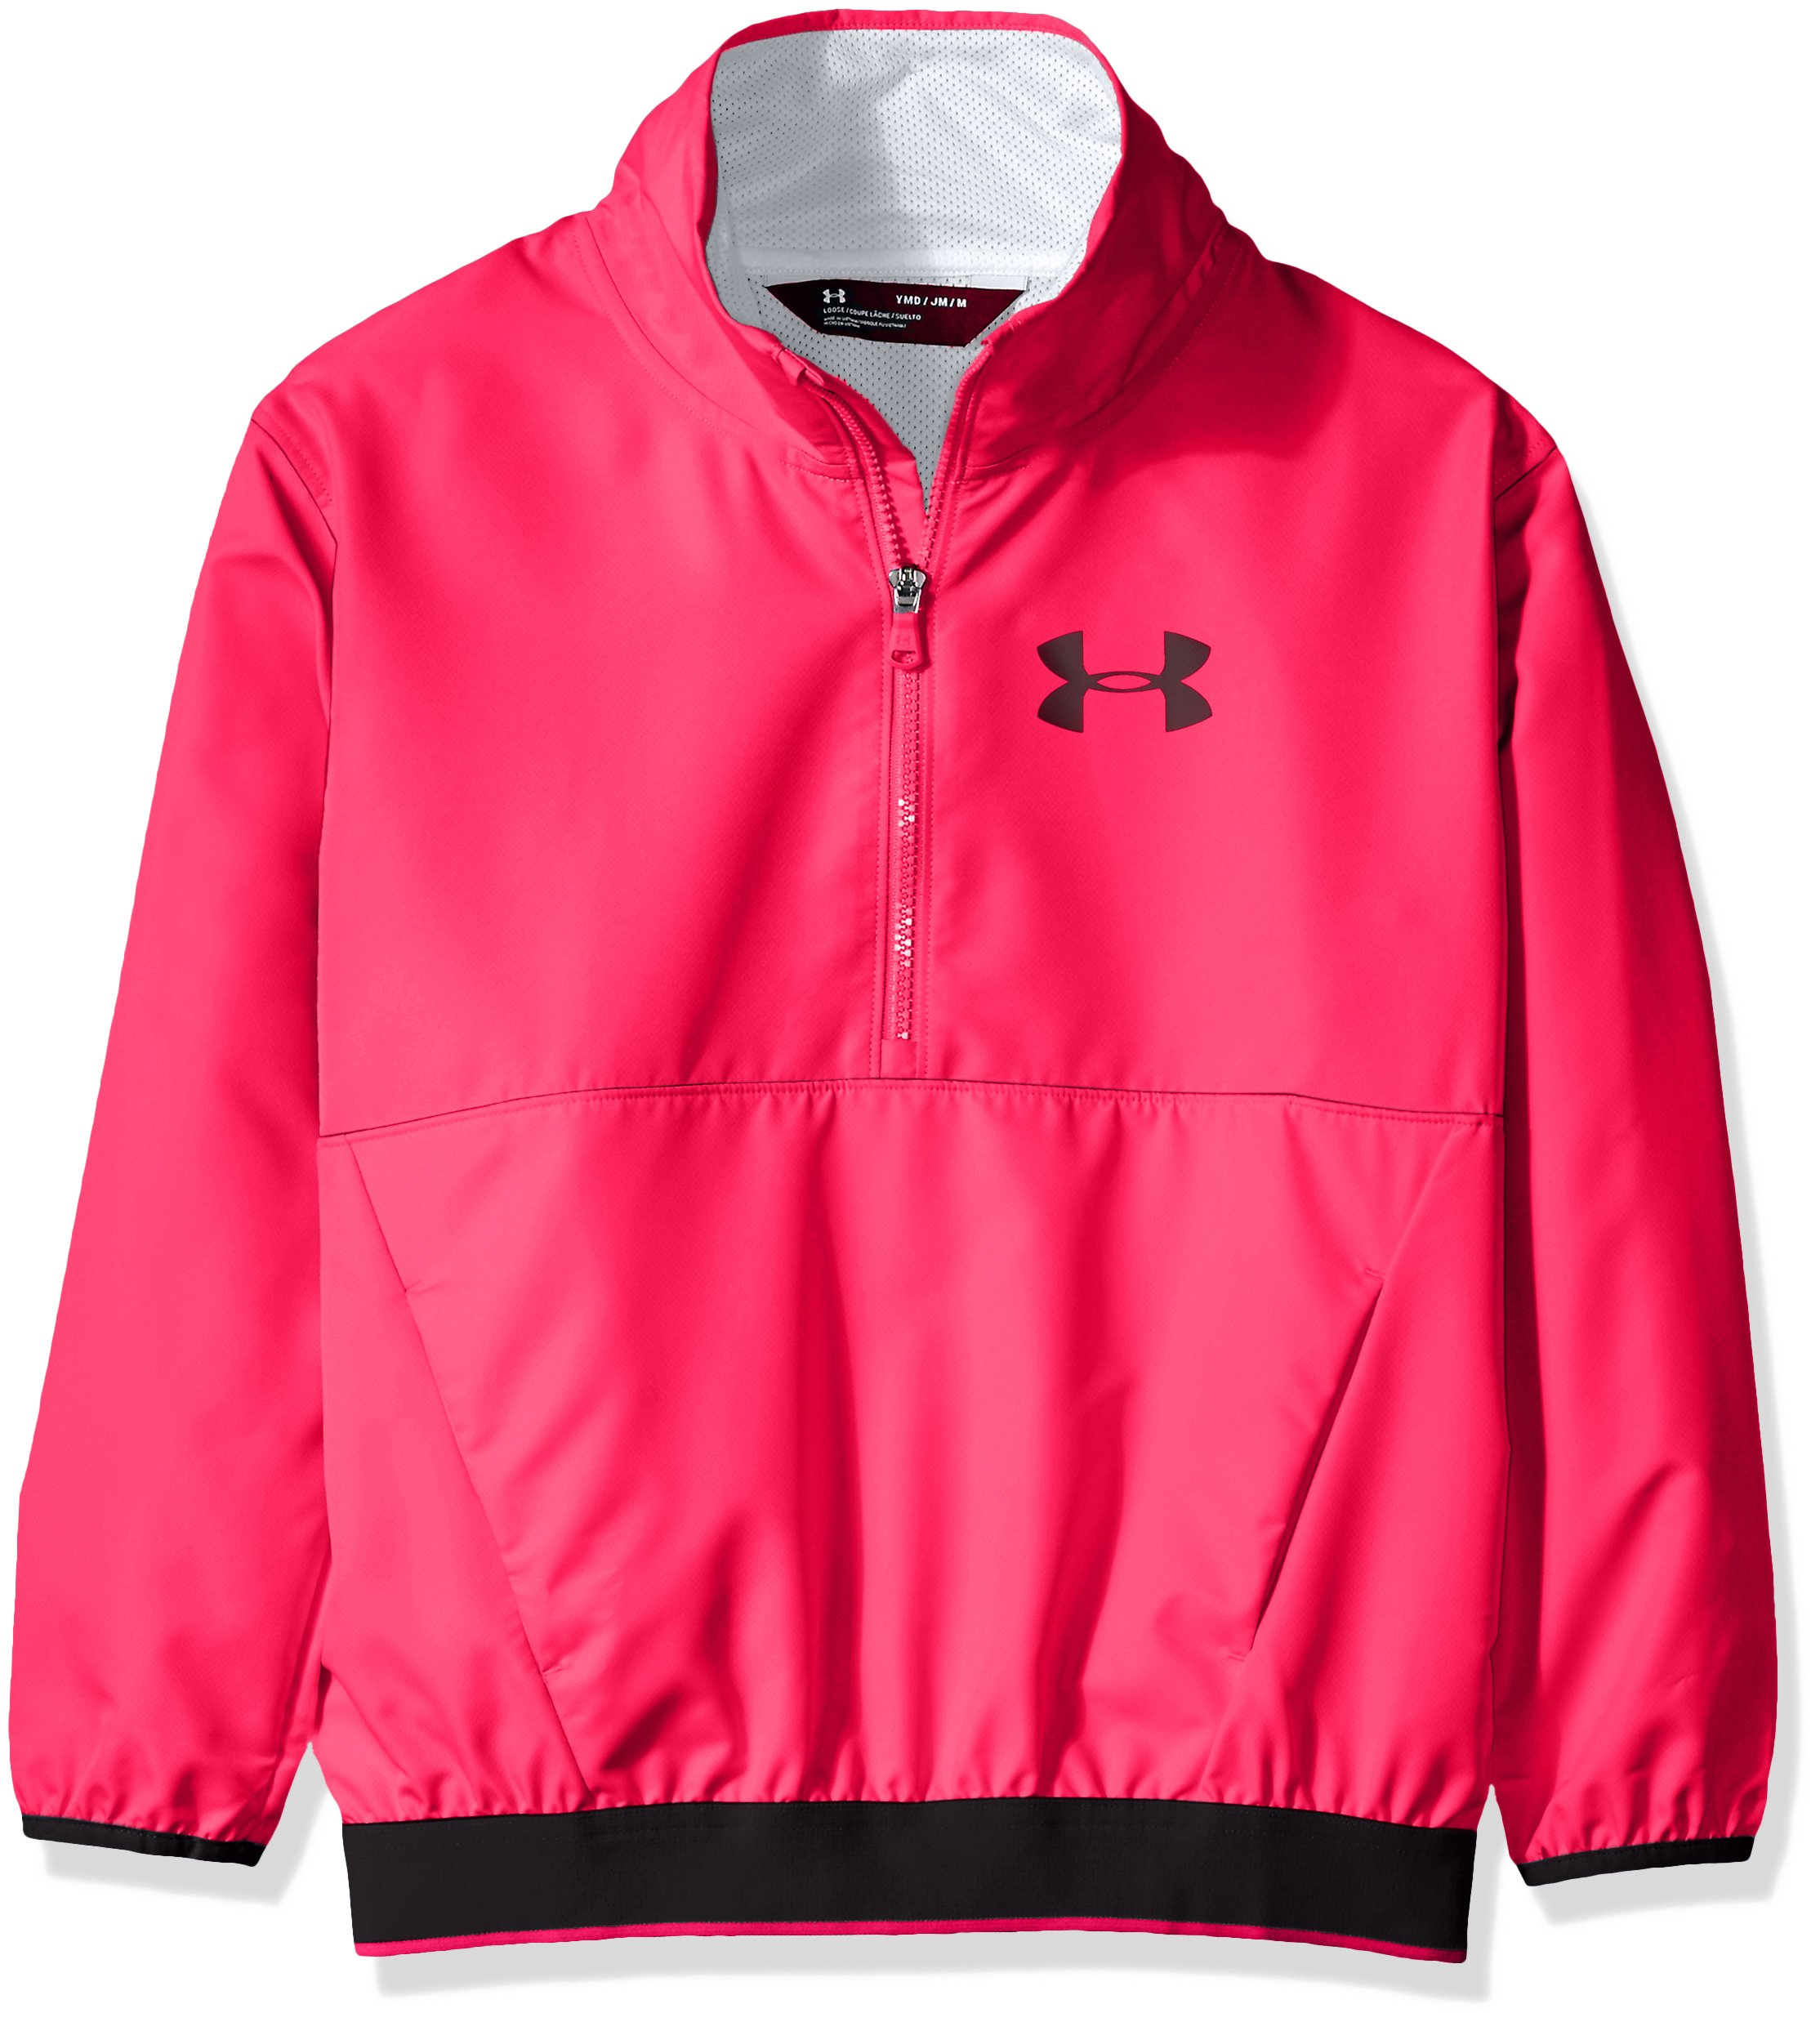 Under Armour Girls' Boat House Jacket, Penta Pink (975)/Black, Youth Medium by Under Armour